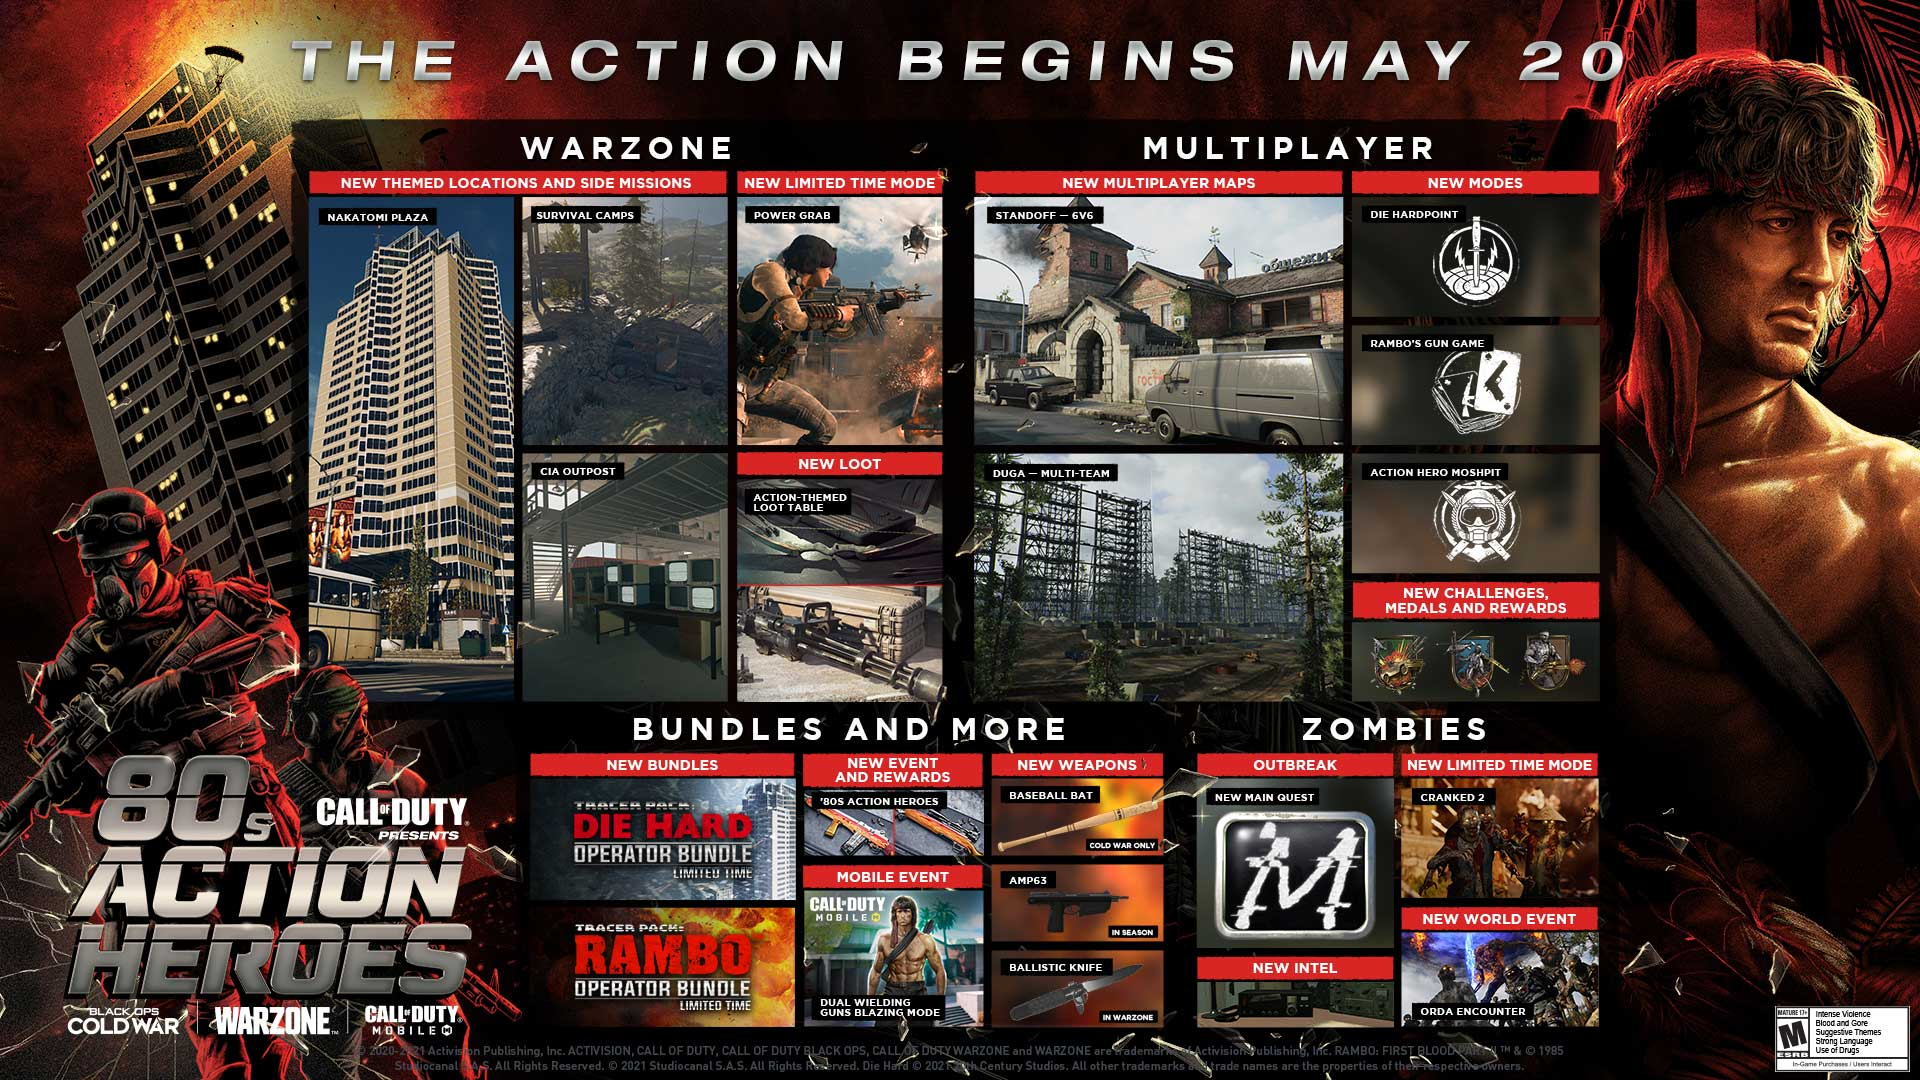 80s Actions Heroes Join Call of Duty